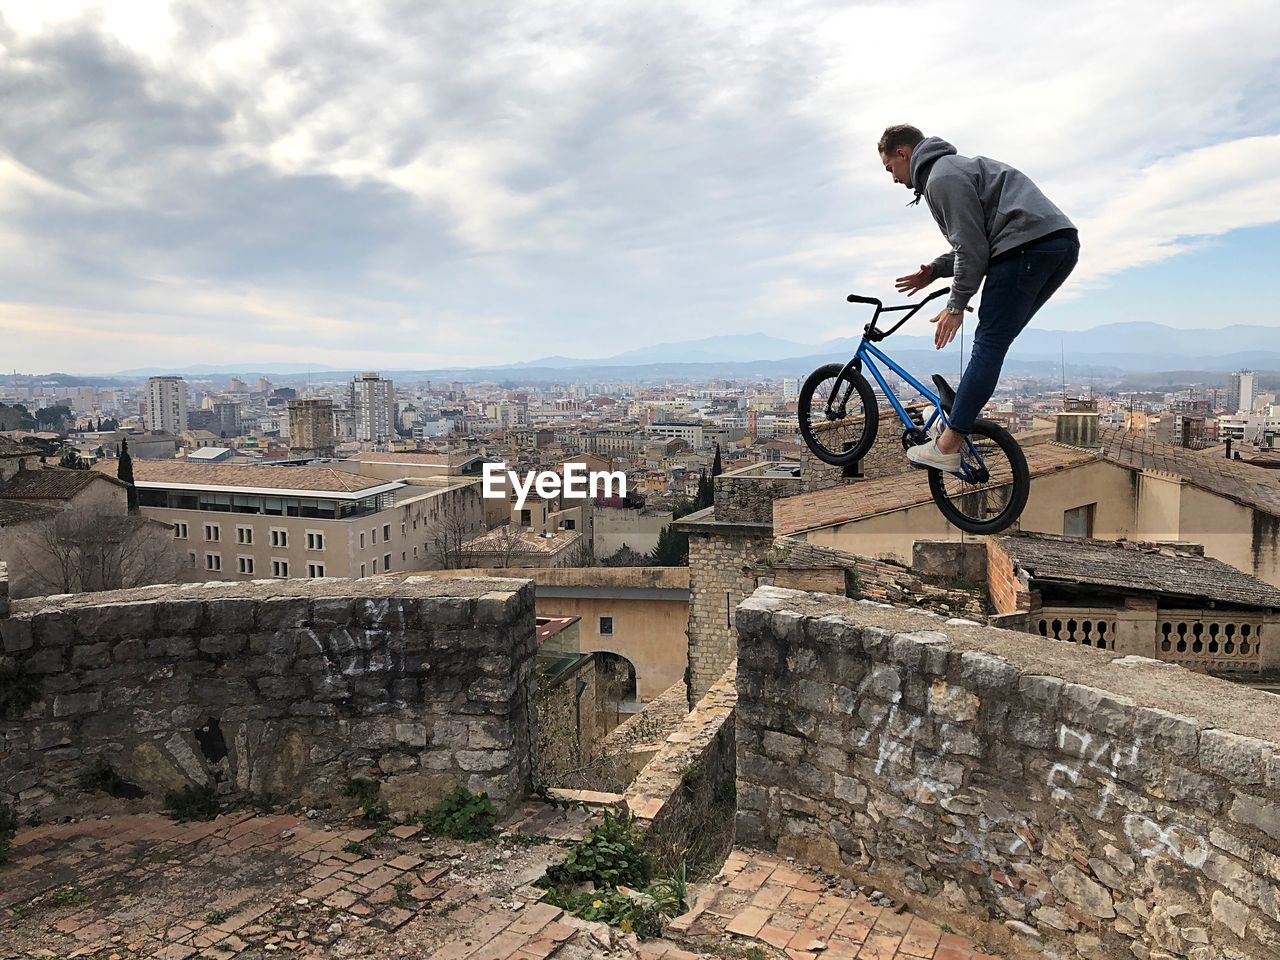 architecture, built structure, building exterior, stunt, one person, leisure activity, real people, lifestyles, skill, full length, sky, mid-air, nature, city, cloud - sky, bicycle, sport, young men, men, outdoors, riding